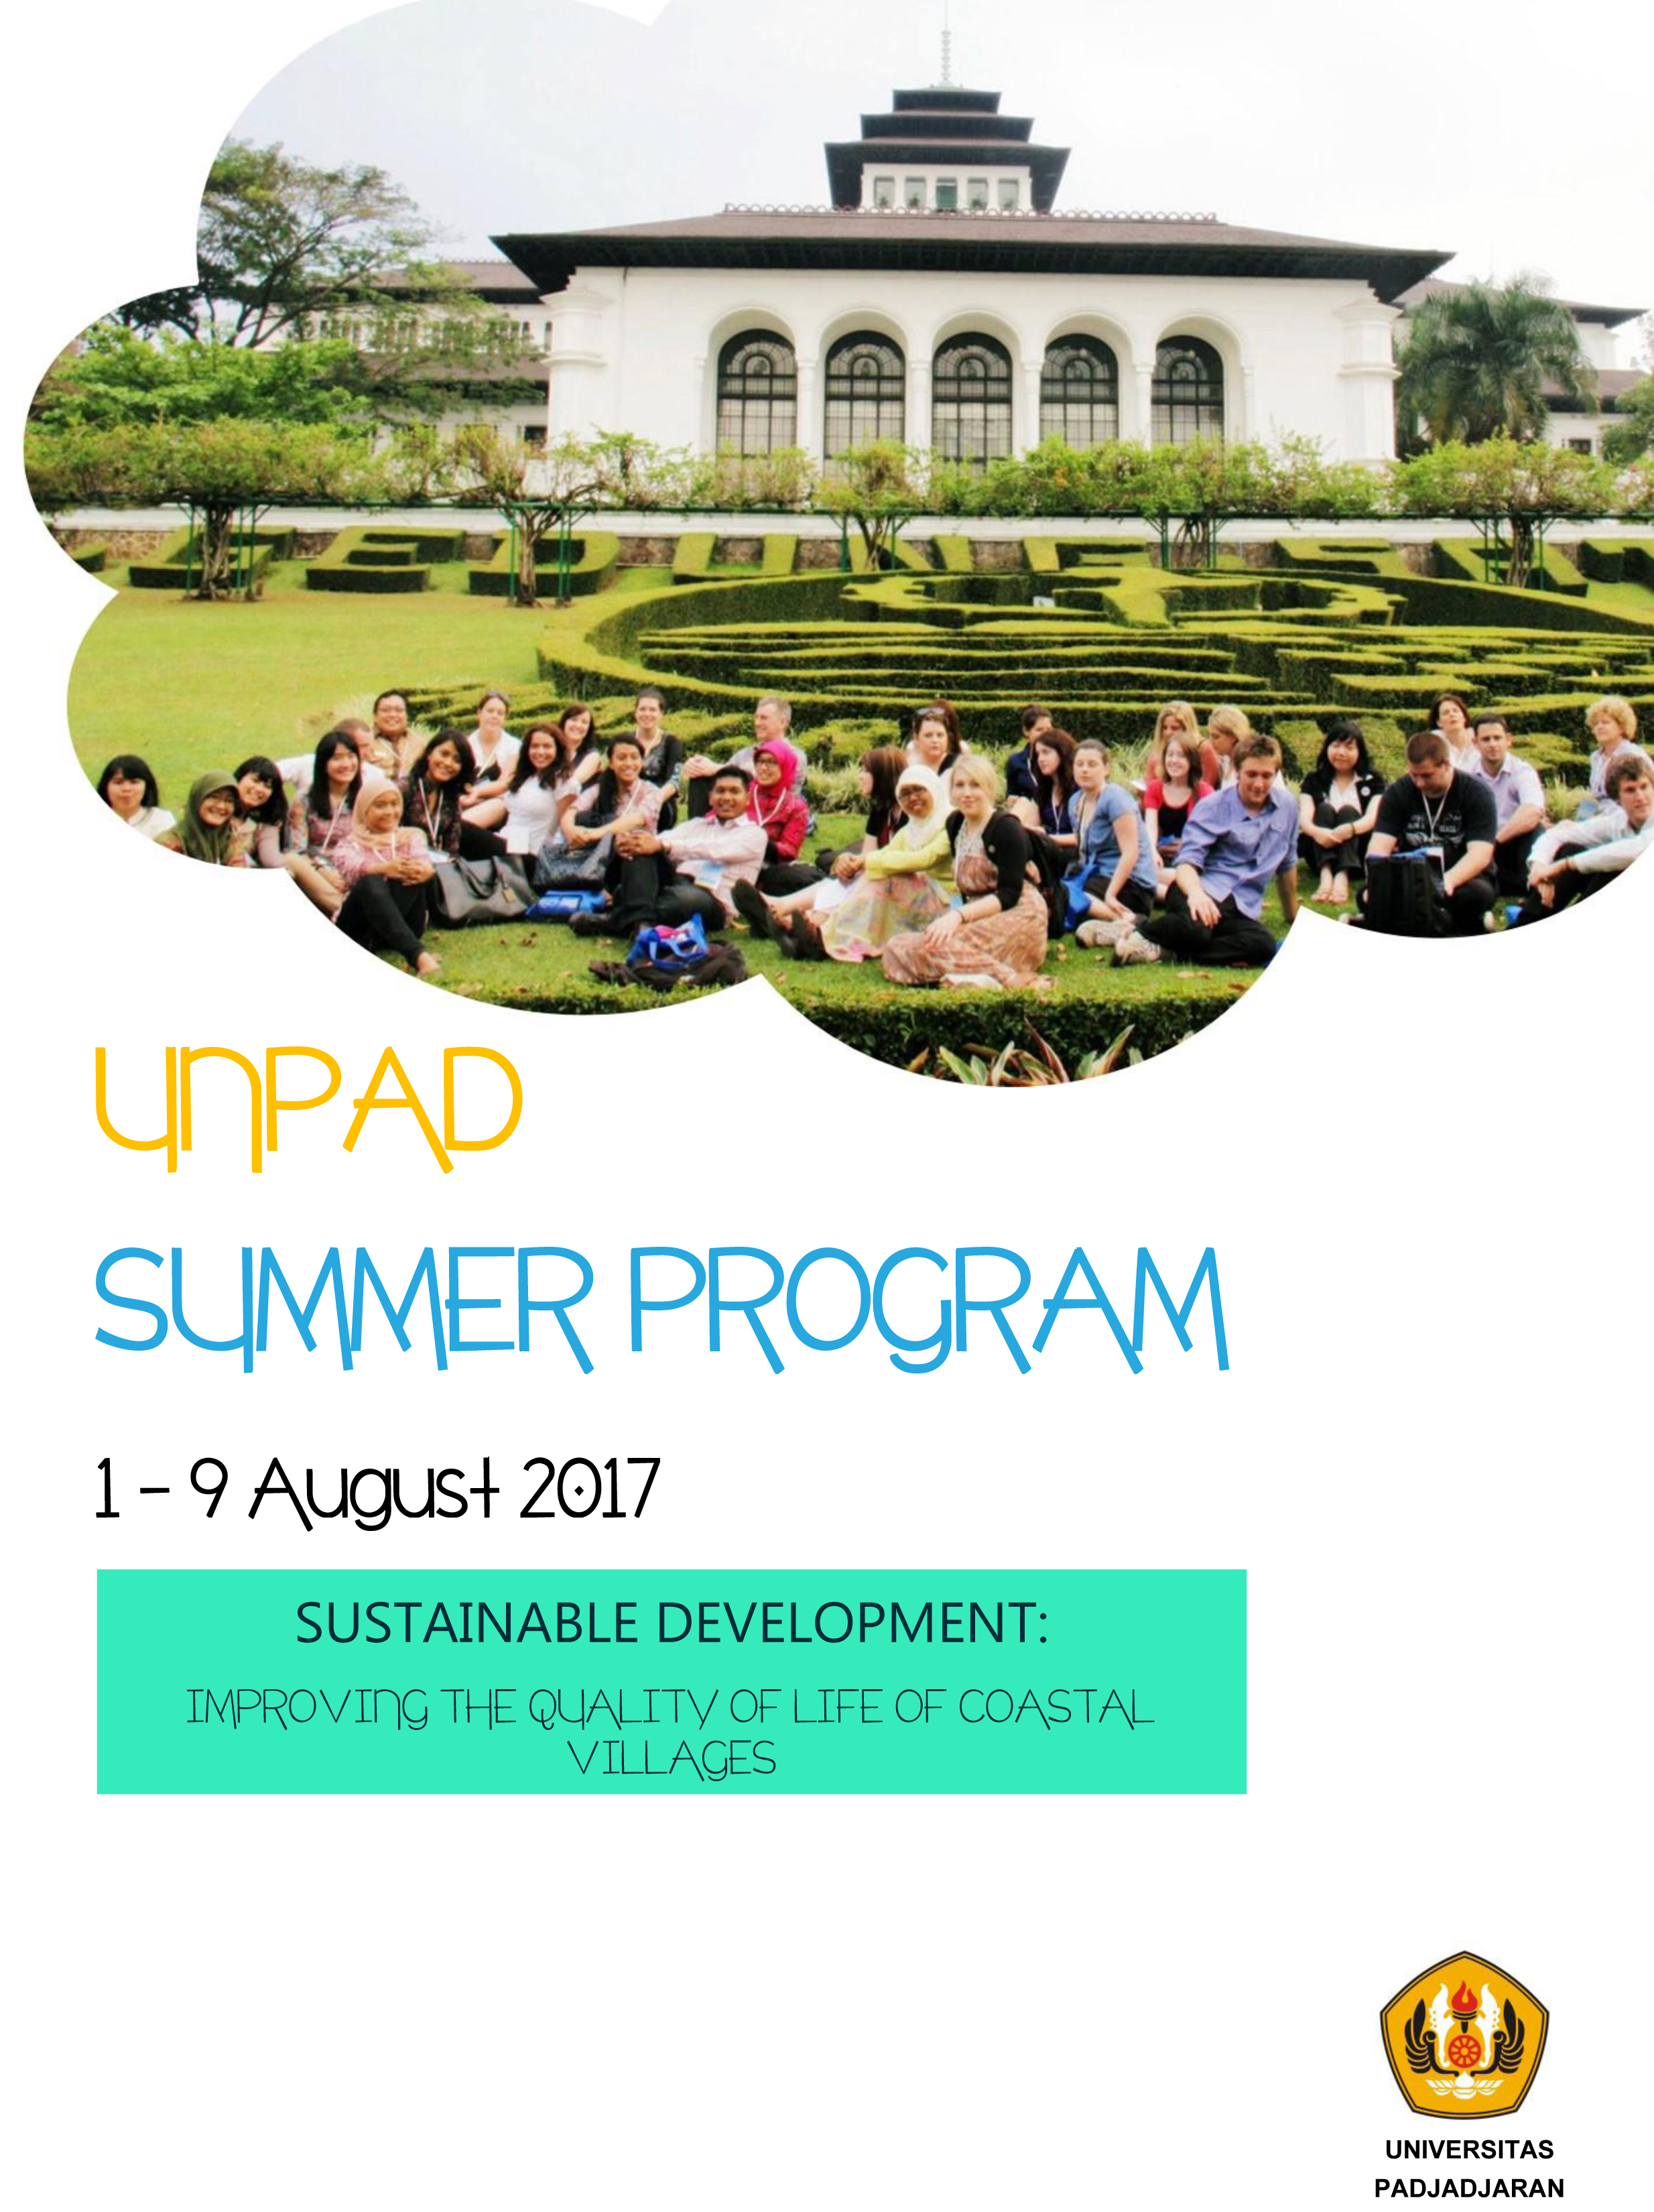 Unpad Summer Program 1-9 Agustus 2017 Sustainable Development : Improving The Quality of Life of Coastal Villages